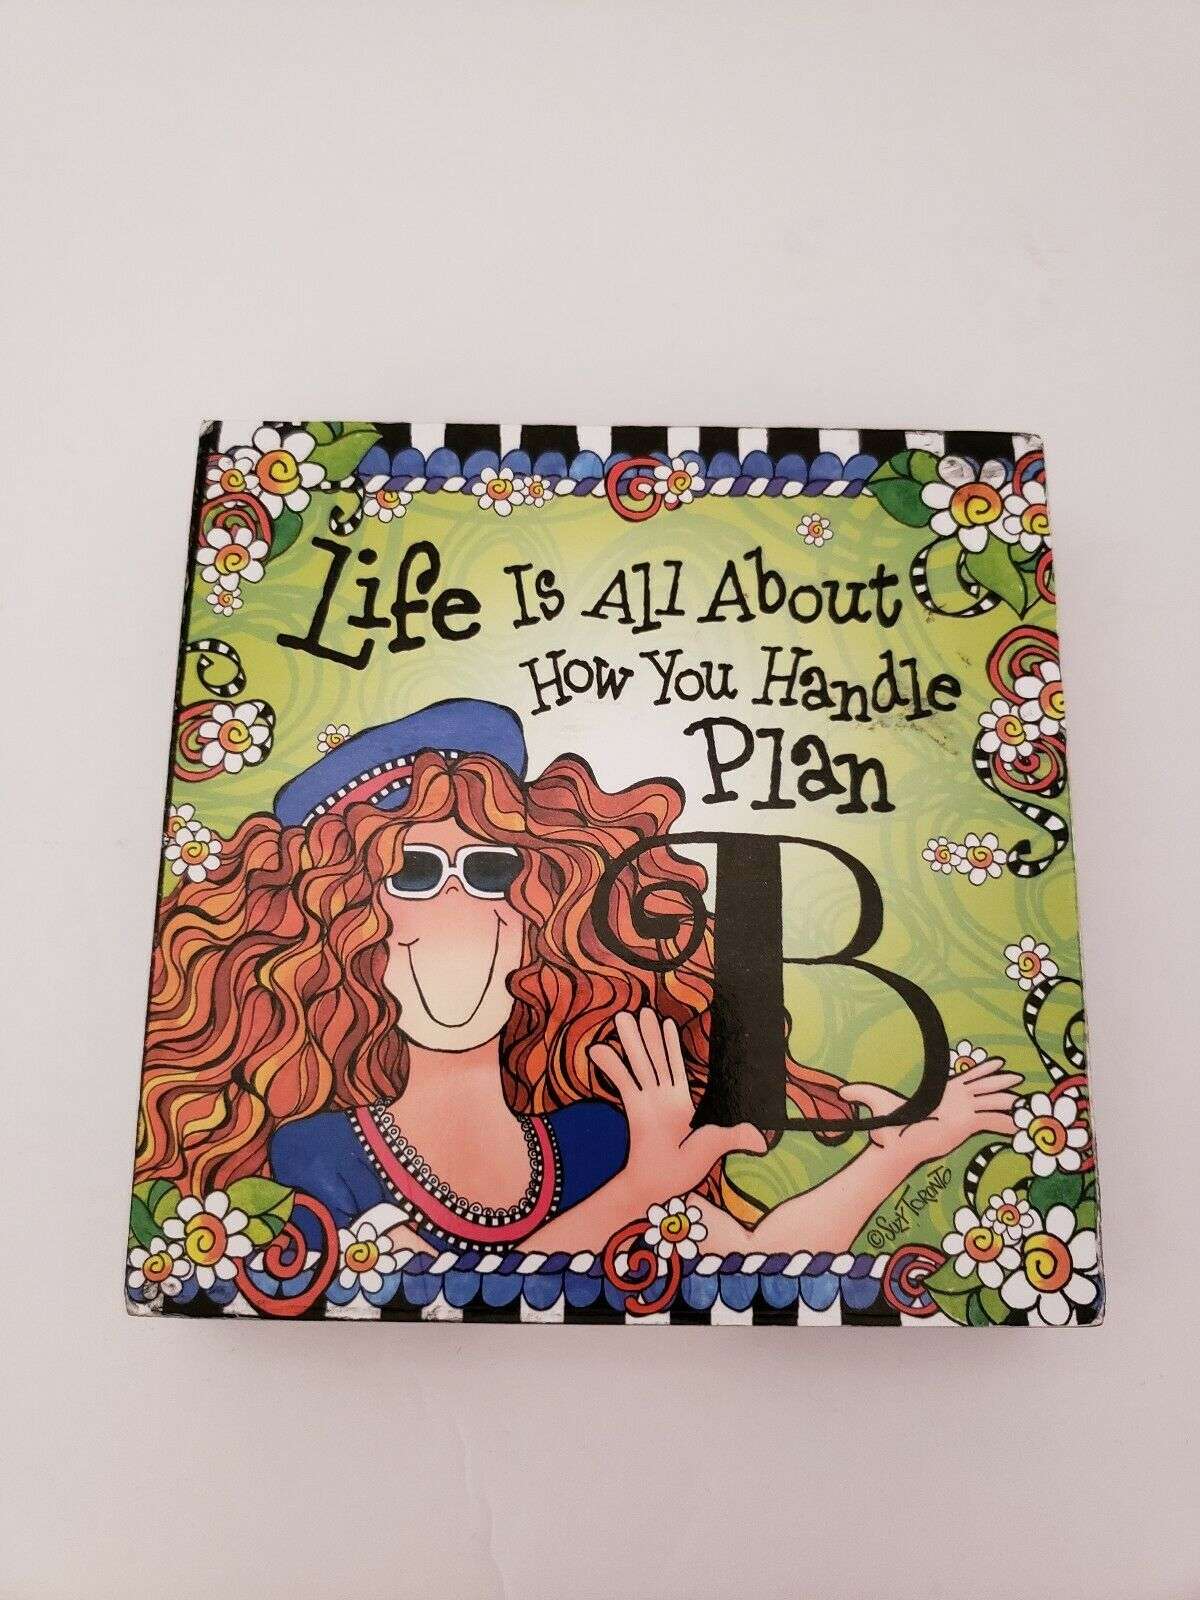 "Primary image for Freestanding Plaque Suzy Toronto Life is All About How You Handle Plan B 5"" x 5"""